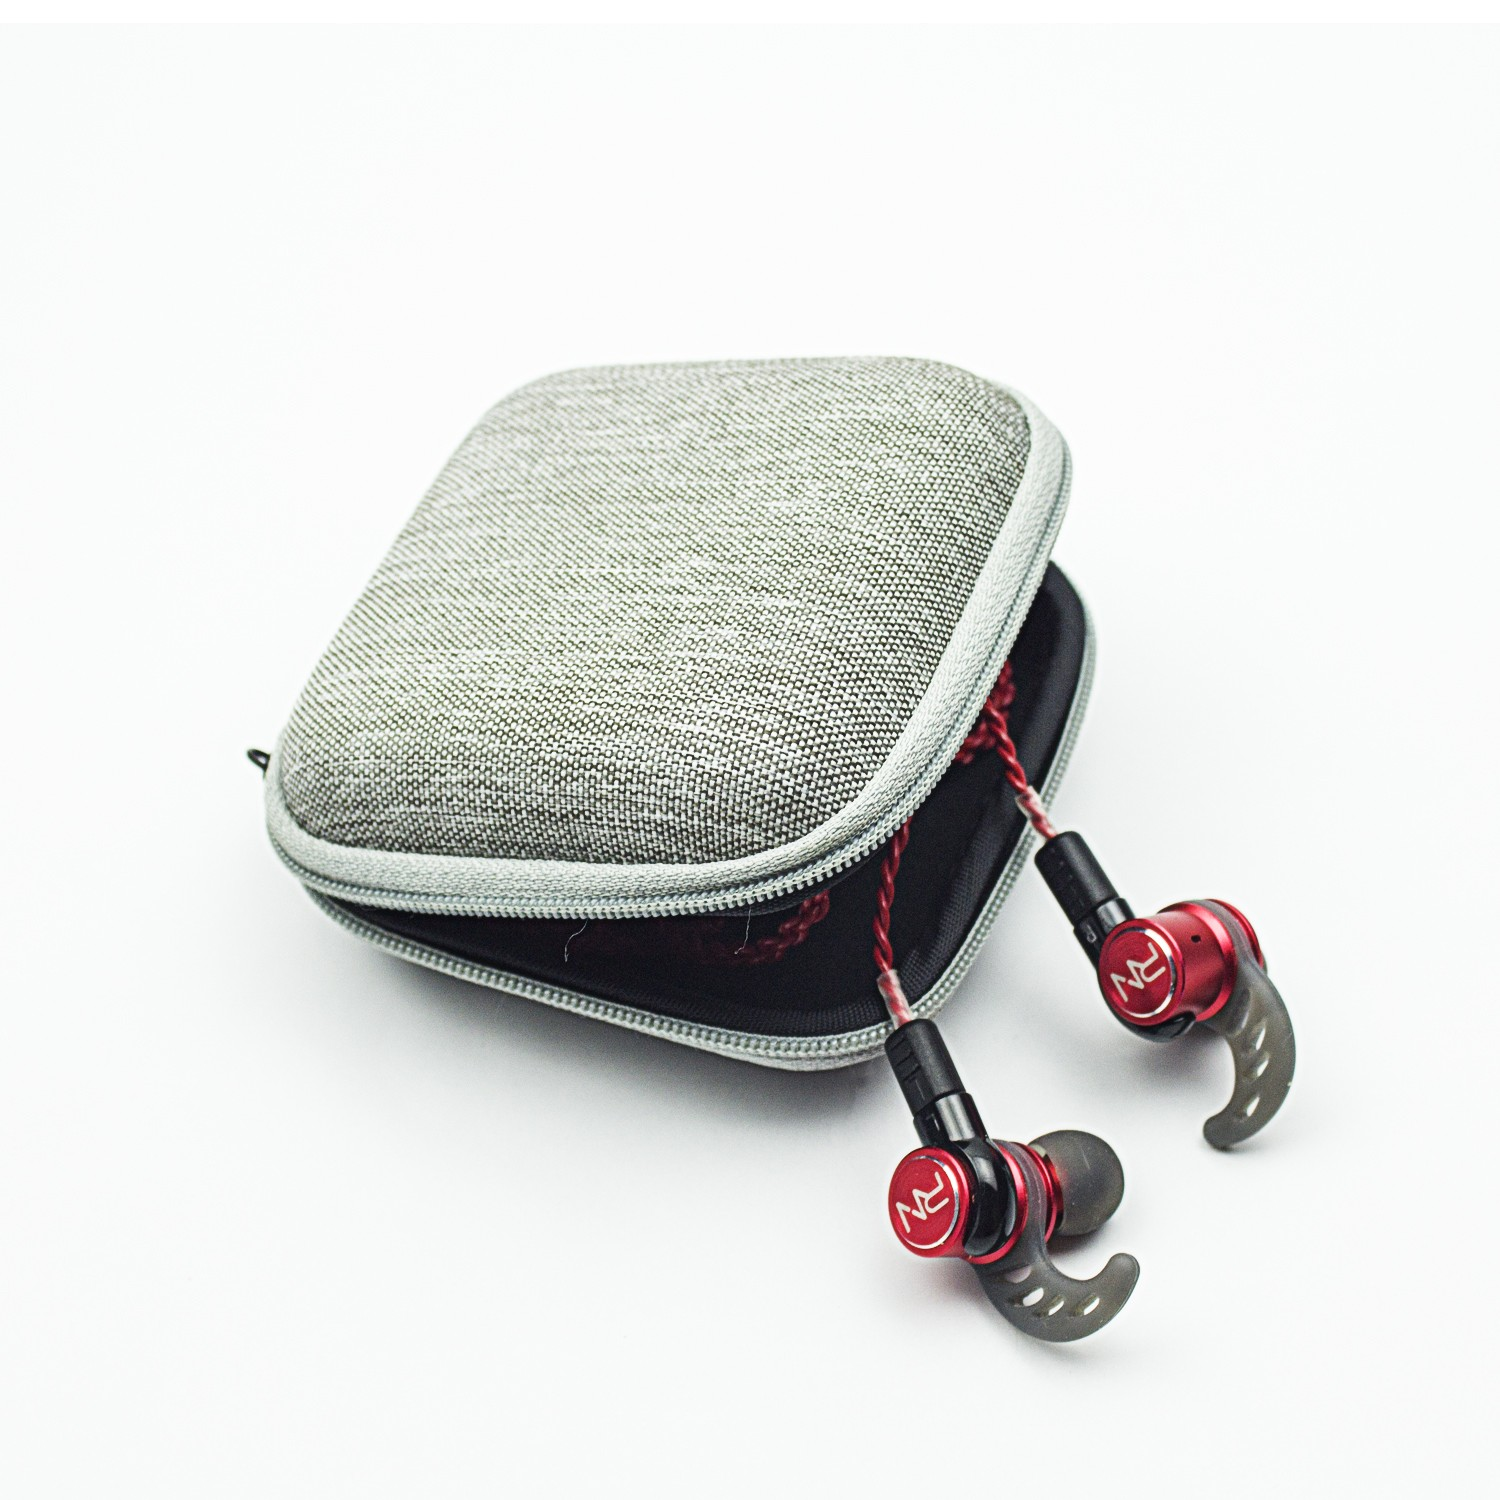 RevoNext earphone pouch best supplier bulk buy-11